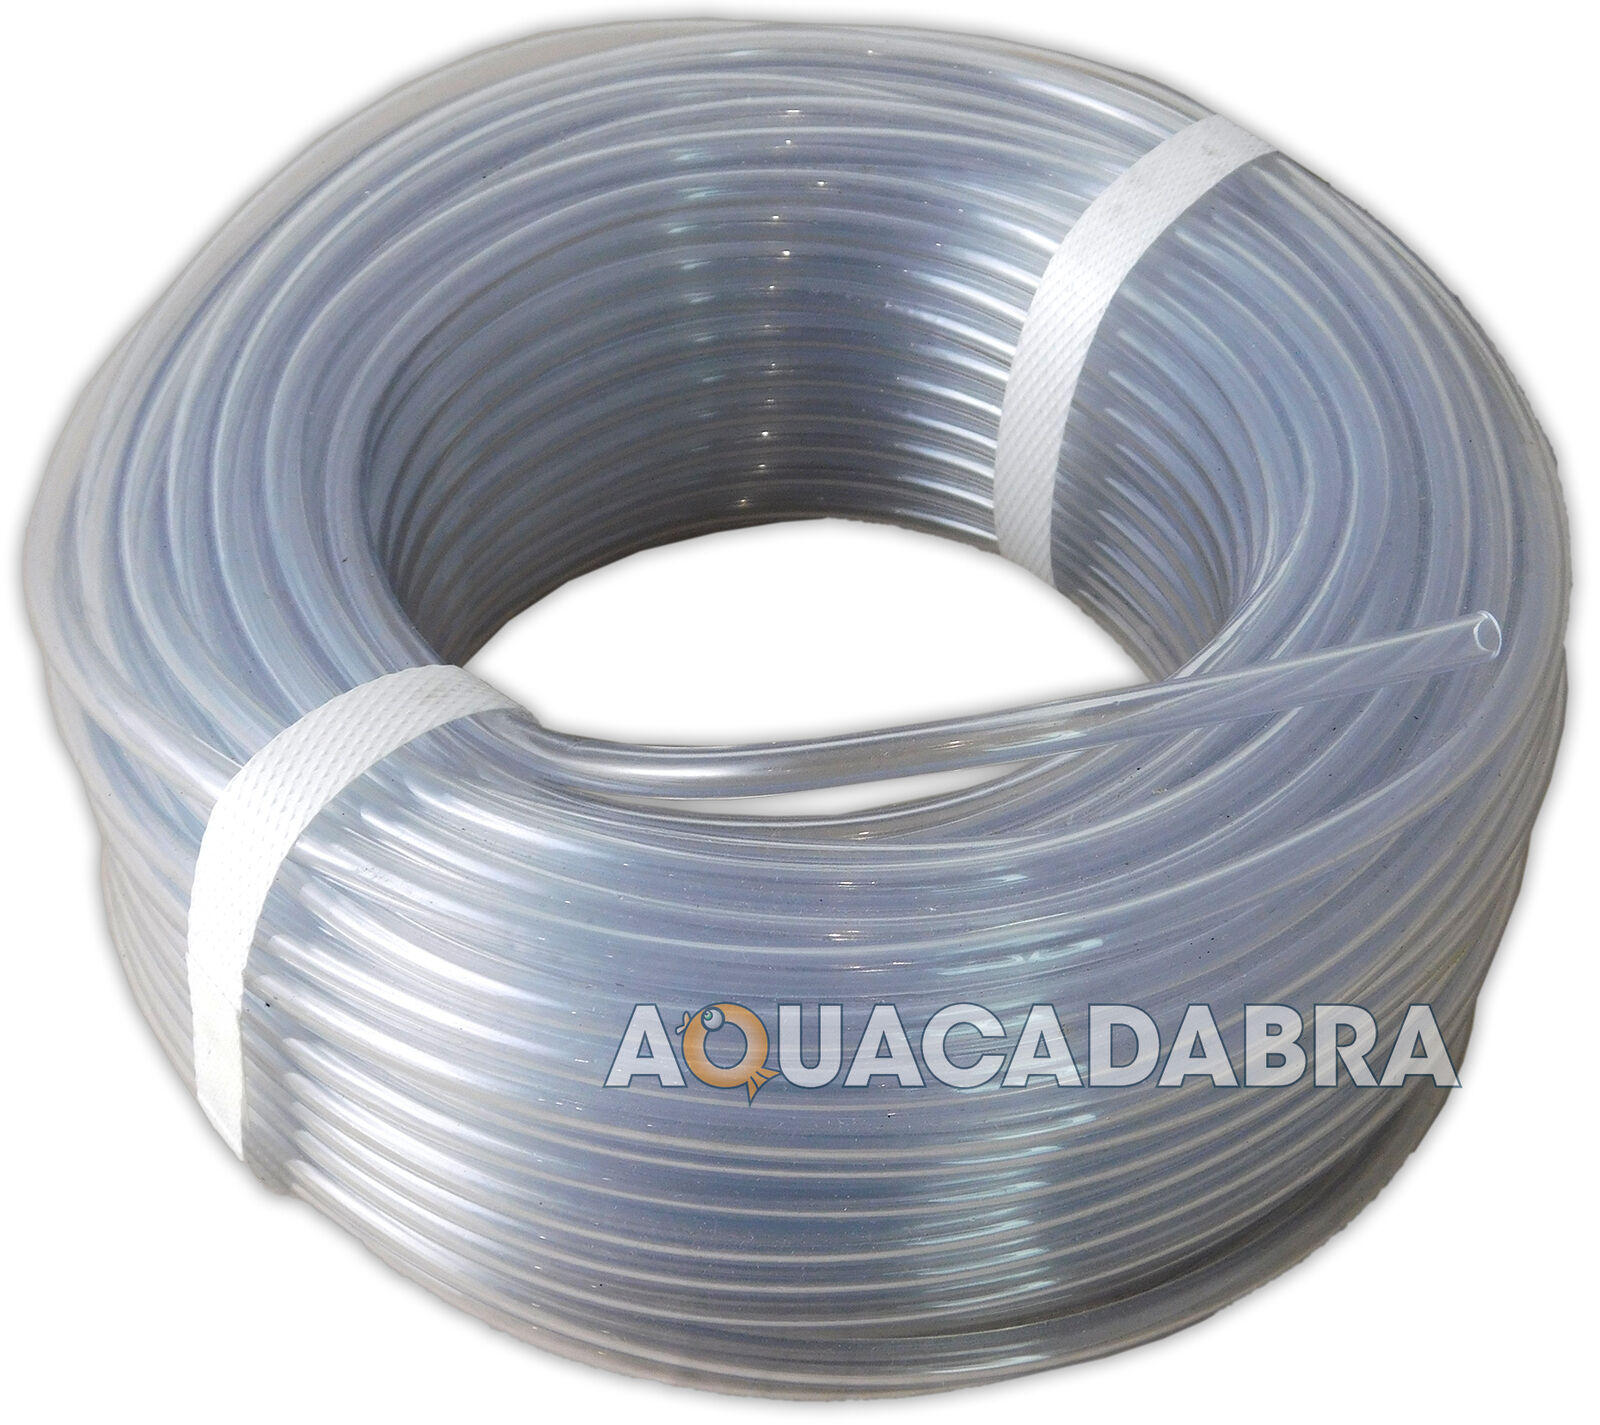 3 METRE CLEAR AIRLINE PLASTIC FOR FISH TANK POND AIR PUMP 3m LENGTH PIPE TUBE